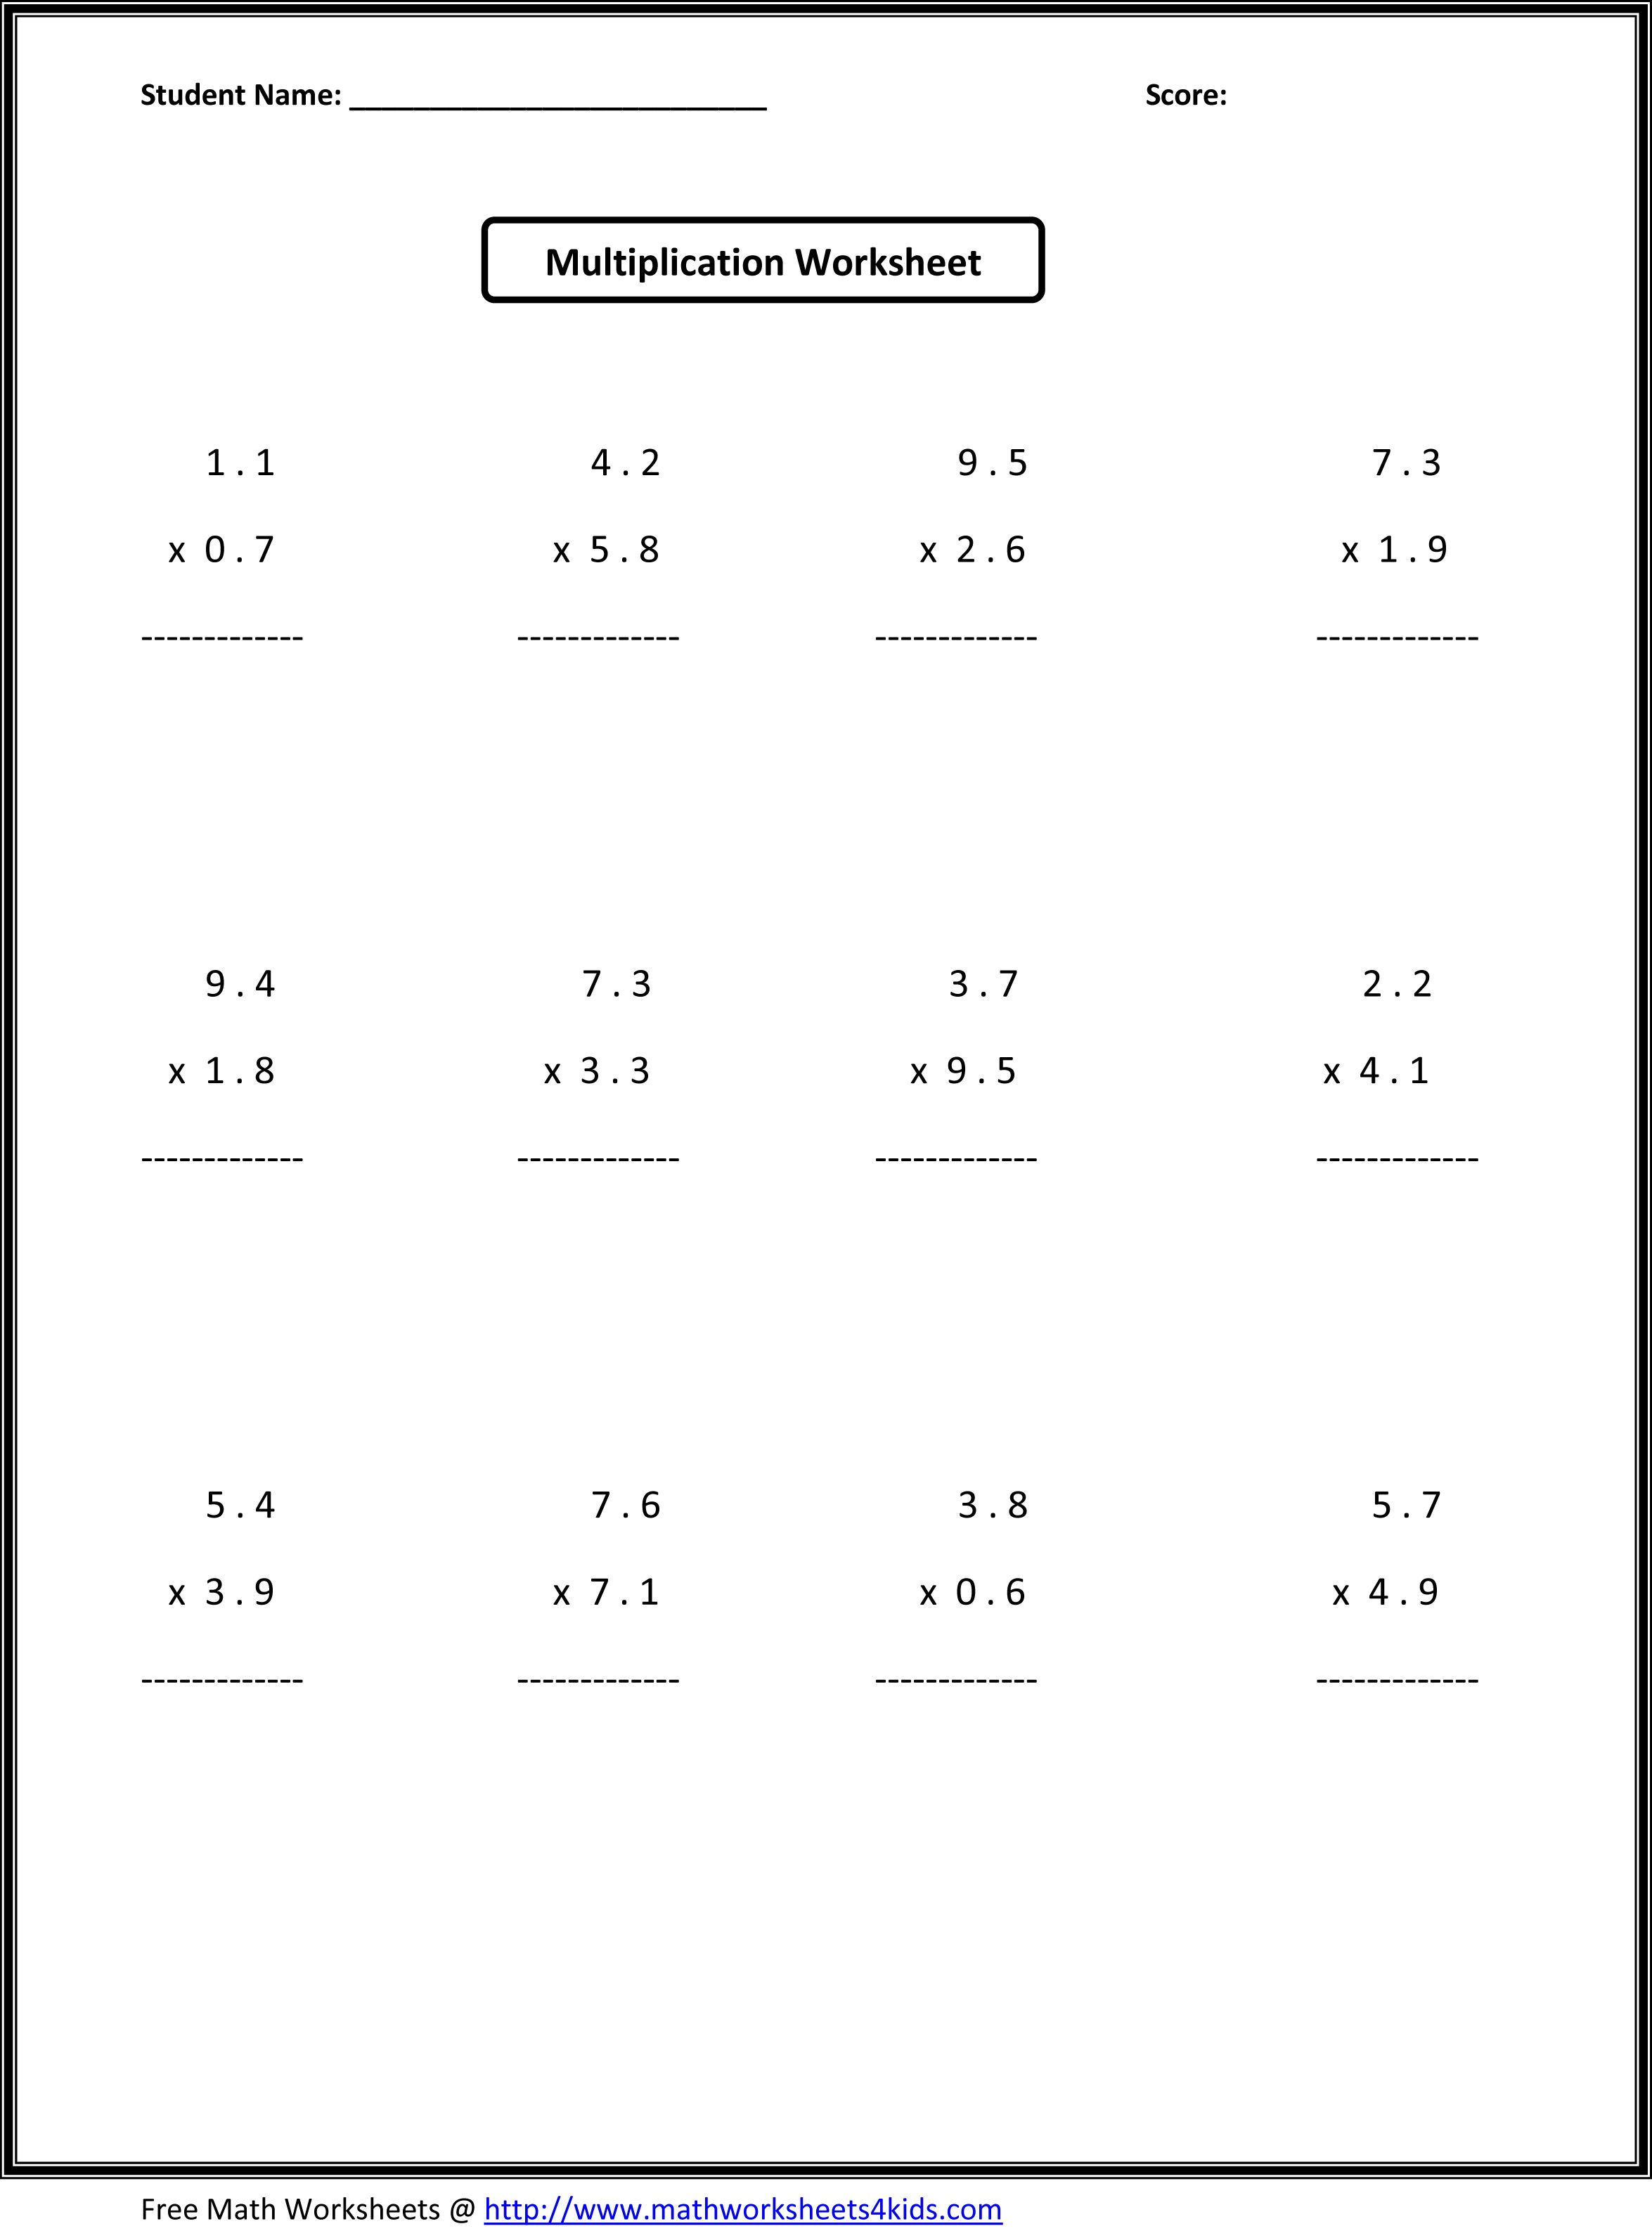 Uncategorized 6th Grade Math Printable Worksheets easy math problems for 6th graders subtraction 3rd grade 7th worksheets value absolute d24181c4e759cf597a2f64098fdda637 389350330256238207 6th